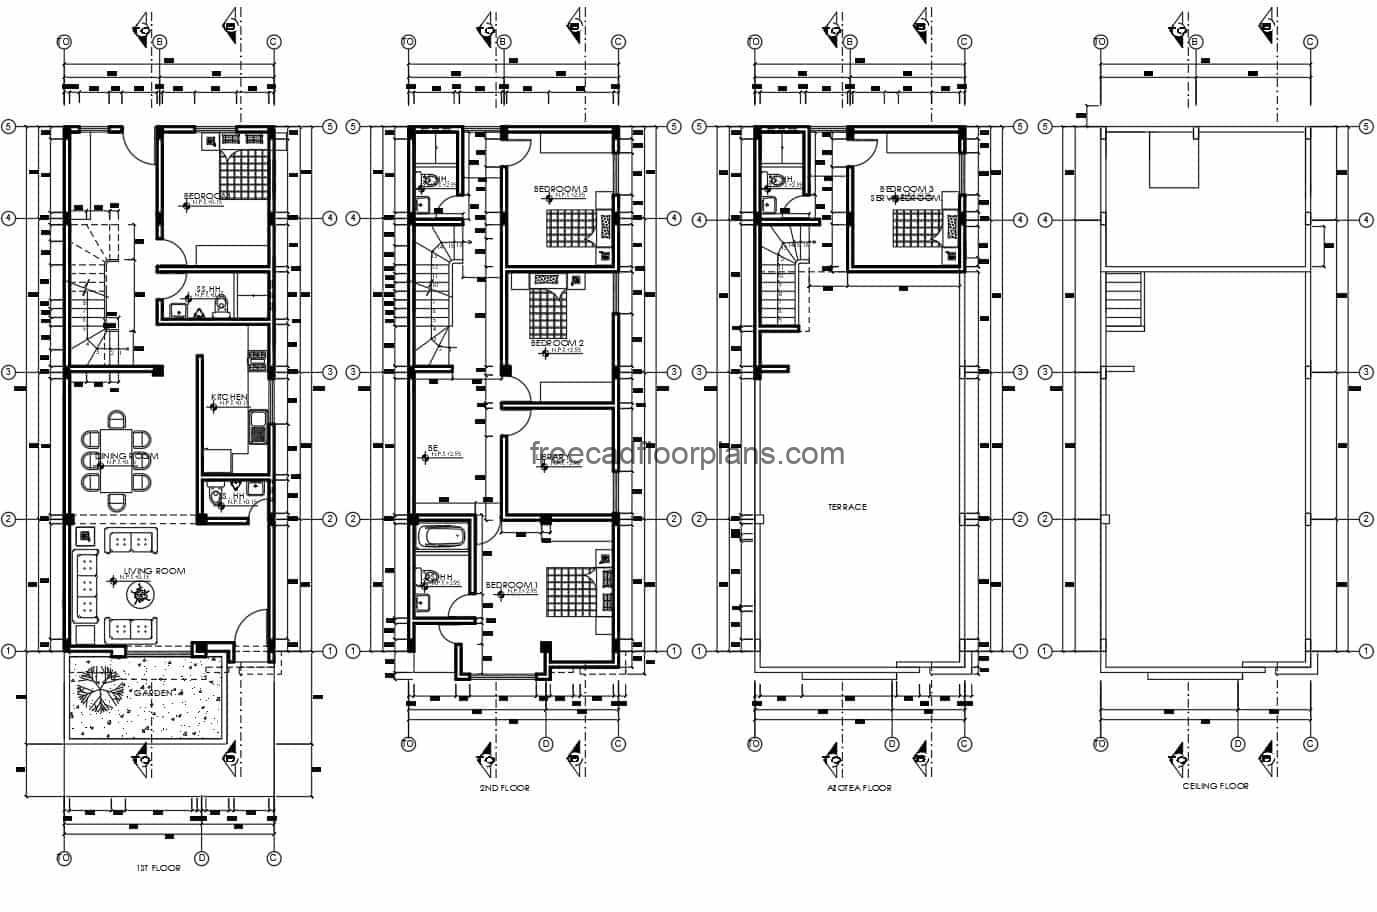 Architectural project plans and dimensioning of rectangular residence of three levels with five rooms in total, the residence has a roof terrace with service area, three rooms with two bathrooms on the second level, and first level with a room and a bathroom apart from the social areas. Blueprints for free download of residence in DWG format with furniture blocks in Autocad.